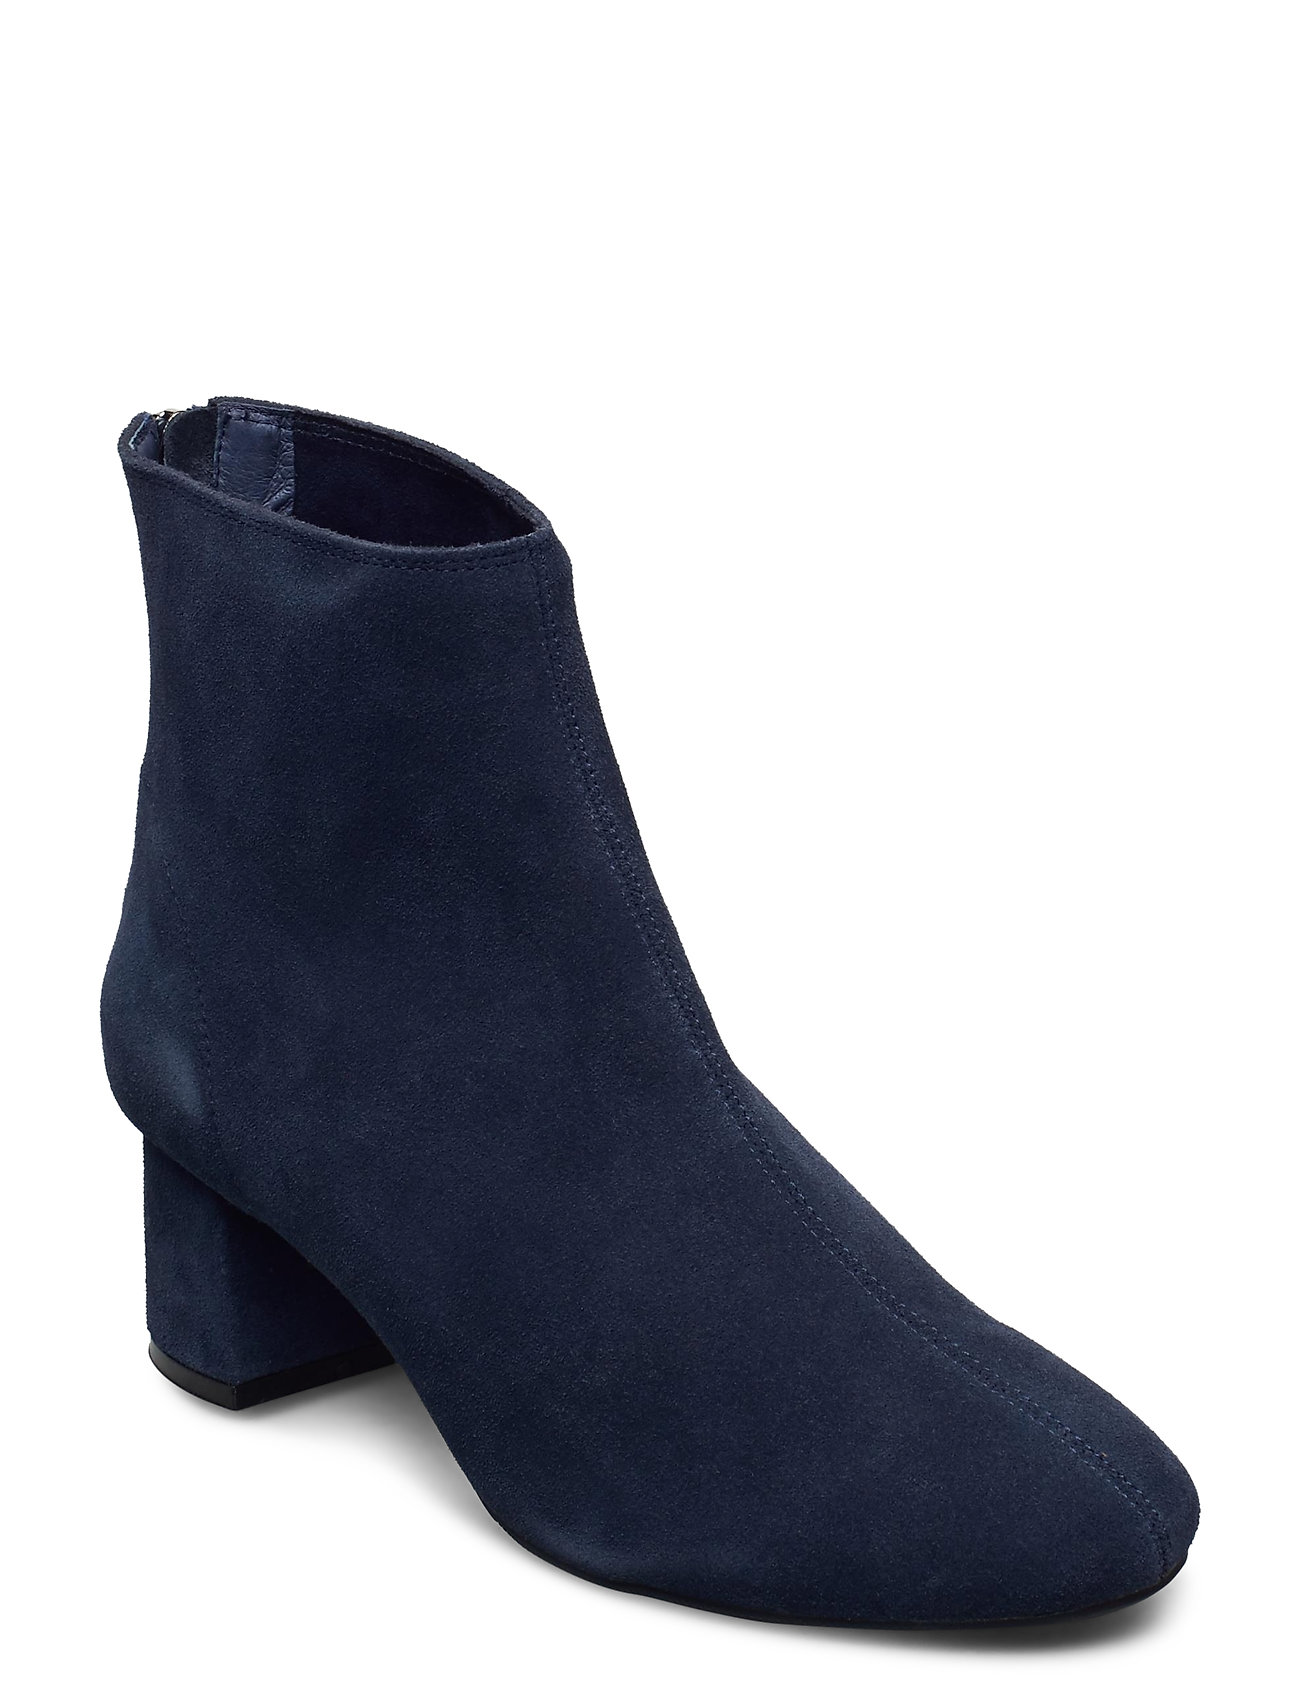 Image of High Heel Ankle Boot Shoes Boots Ankle Boots Ankle Boot - Heel Blå Ilse Jacobsen (3461043891)